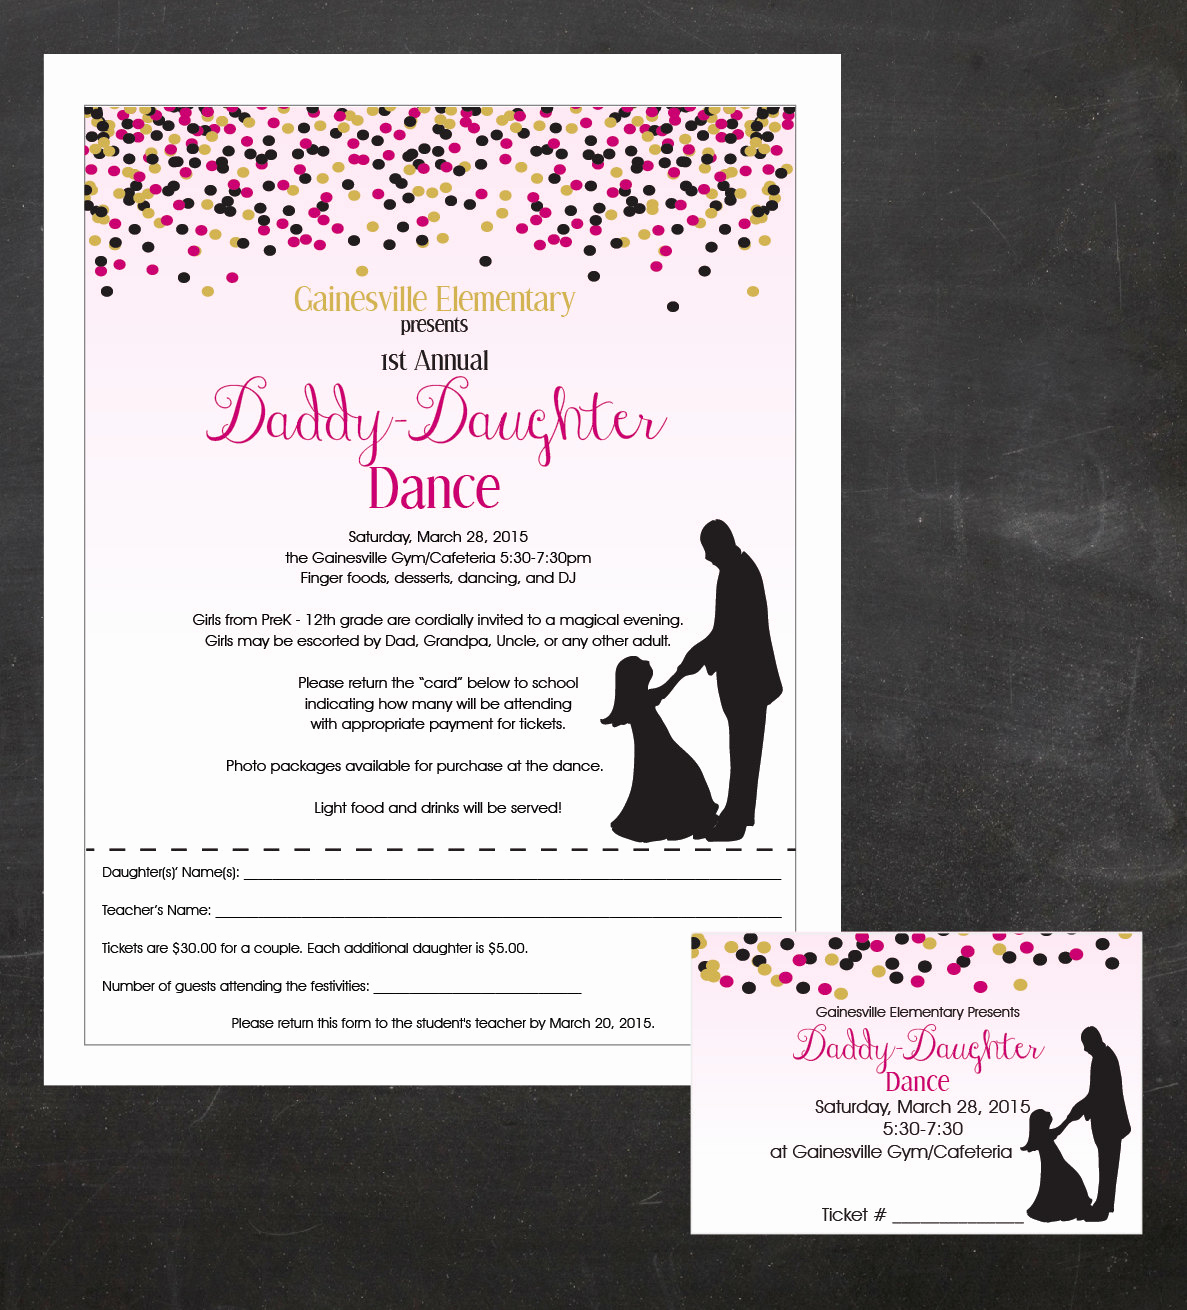 Father Daughter Dance Invitation Best Of Daddy Daughter Dance Father and Daughter Dancing event